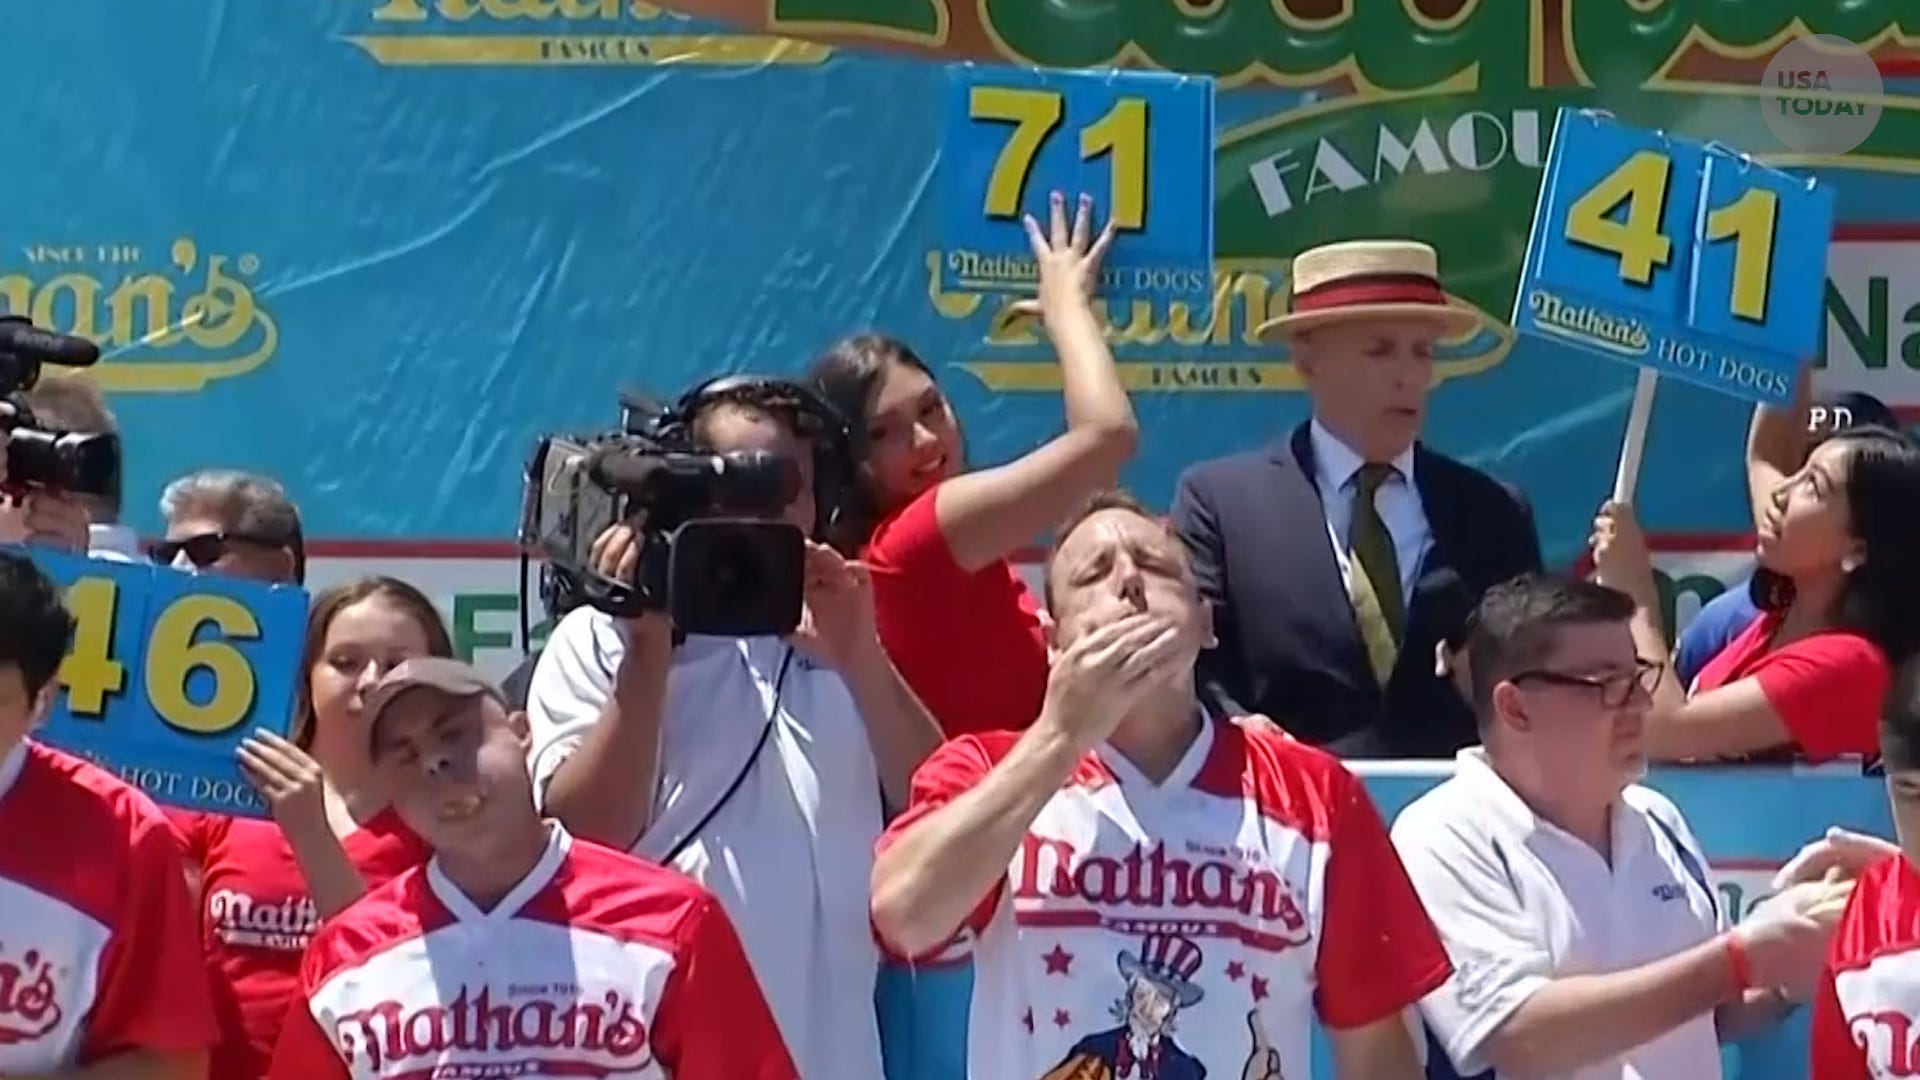 Nathan's Famous Hot Dog Eating Contest is coming back to the Iowa State Fair